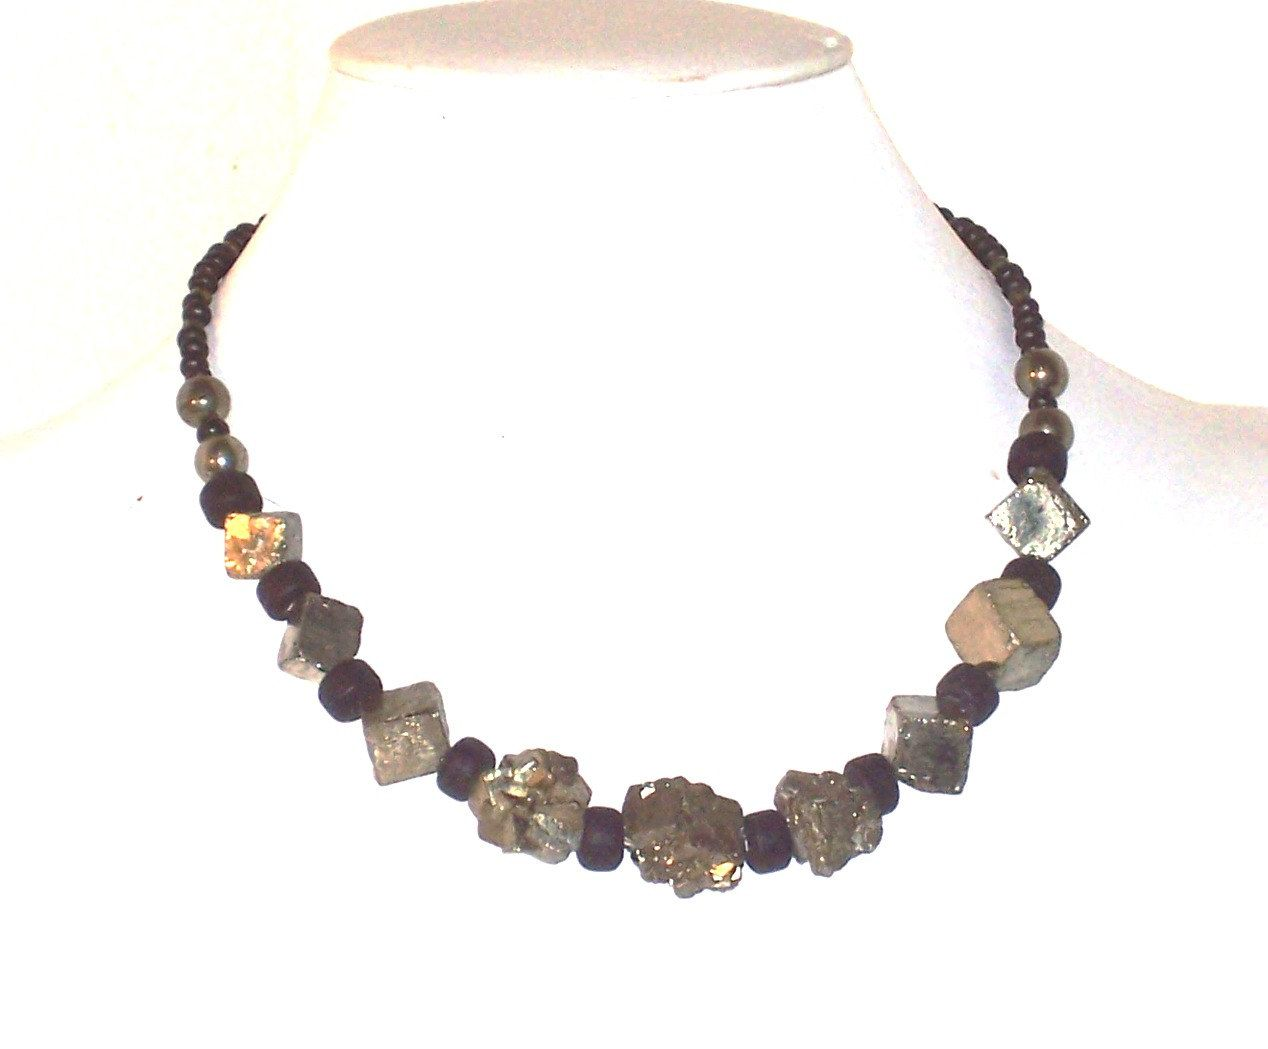 Pyrite nugget necklace with black glass crow beads from amigami